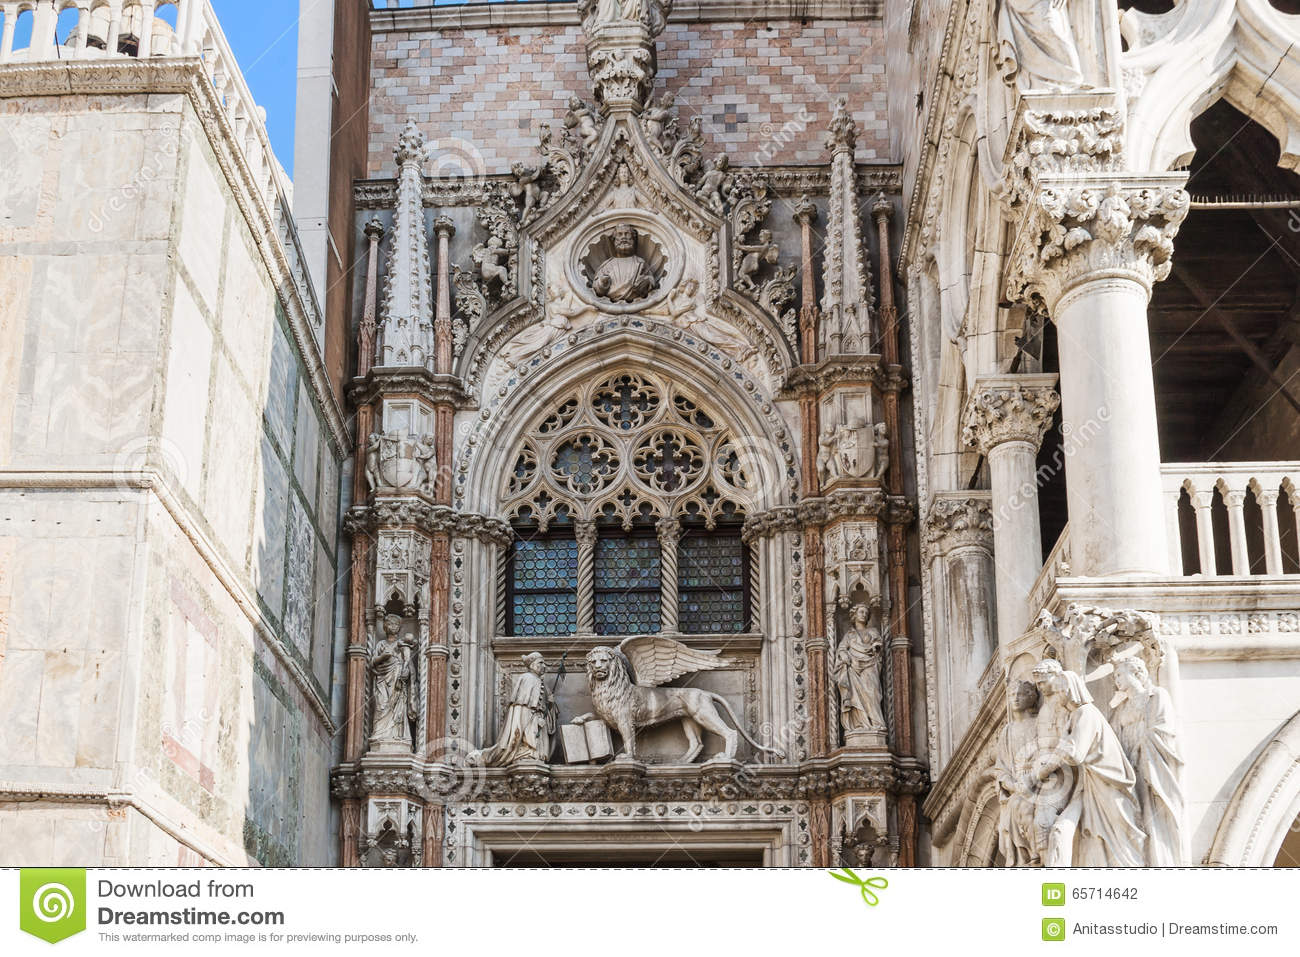 Venice Italy Architecture doges palace (palazzo ducale), venice, italy, architecture details